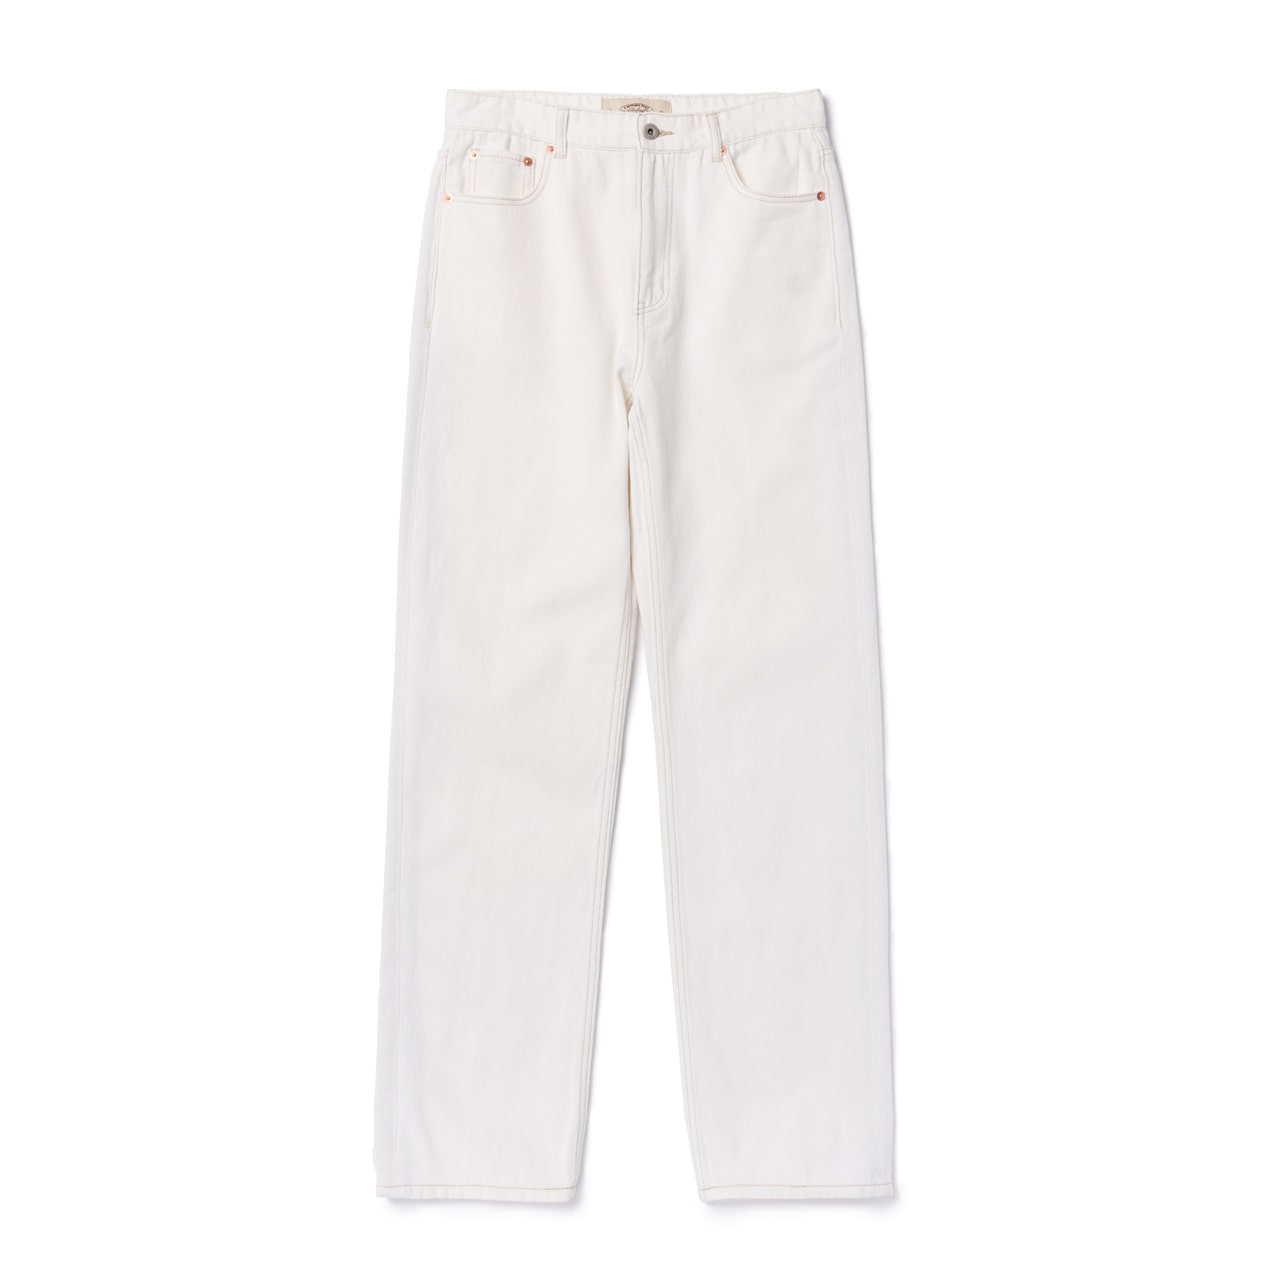 -[AMFEAST] WHITE REGULAR FIT 5 POCKET PANTS